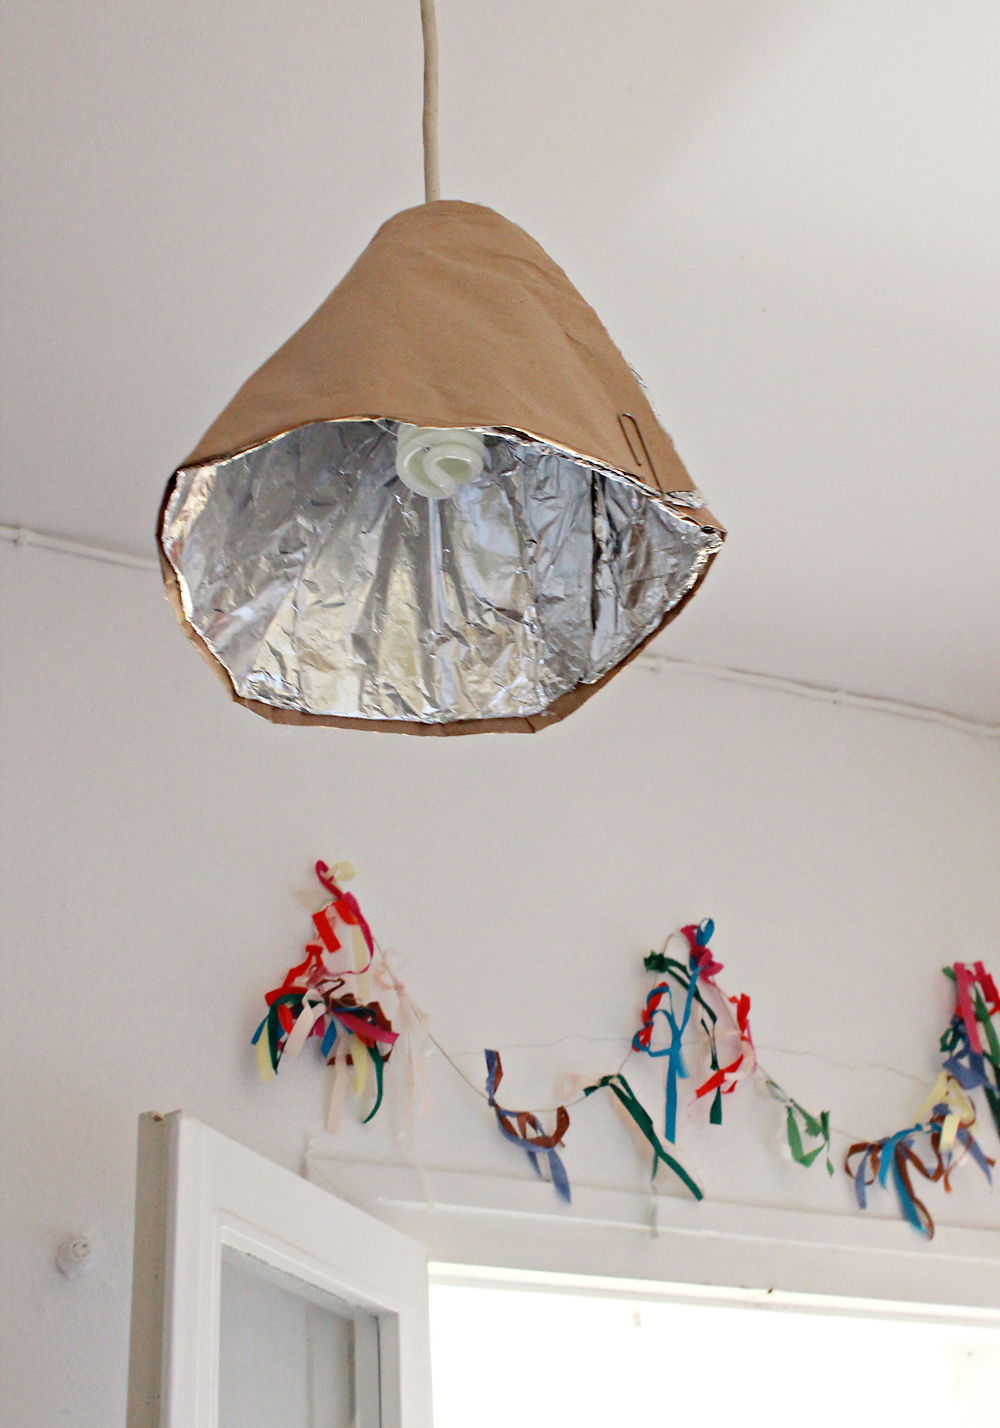 Recycled lamp fixture made from paper towel rolls & aluminum foil.jpg